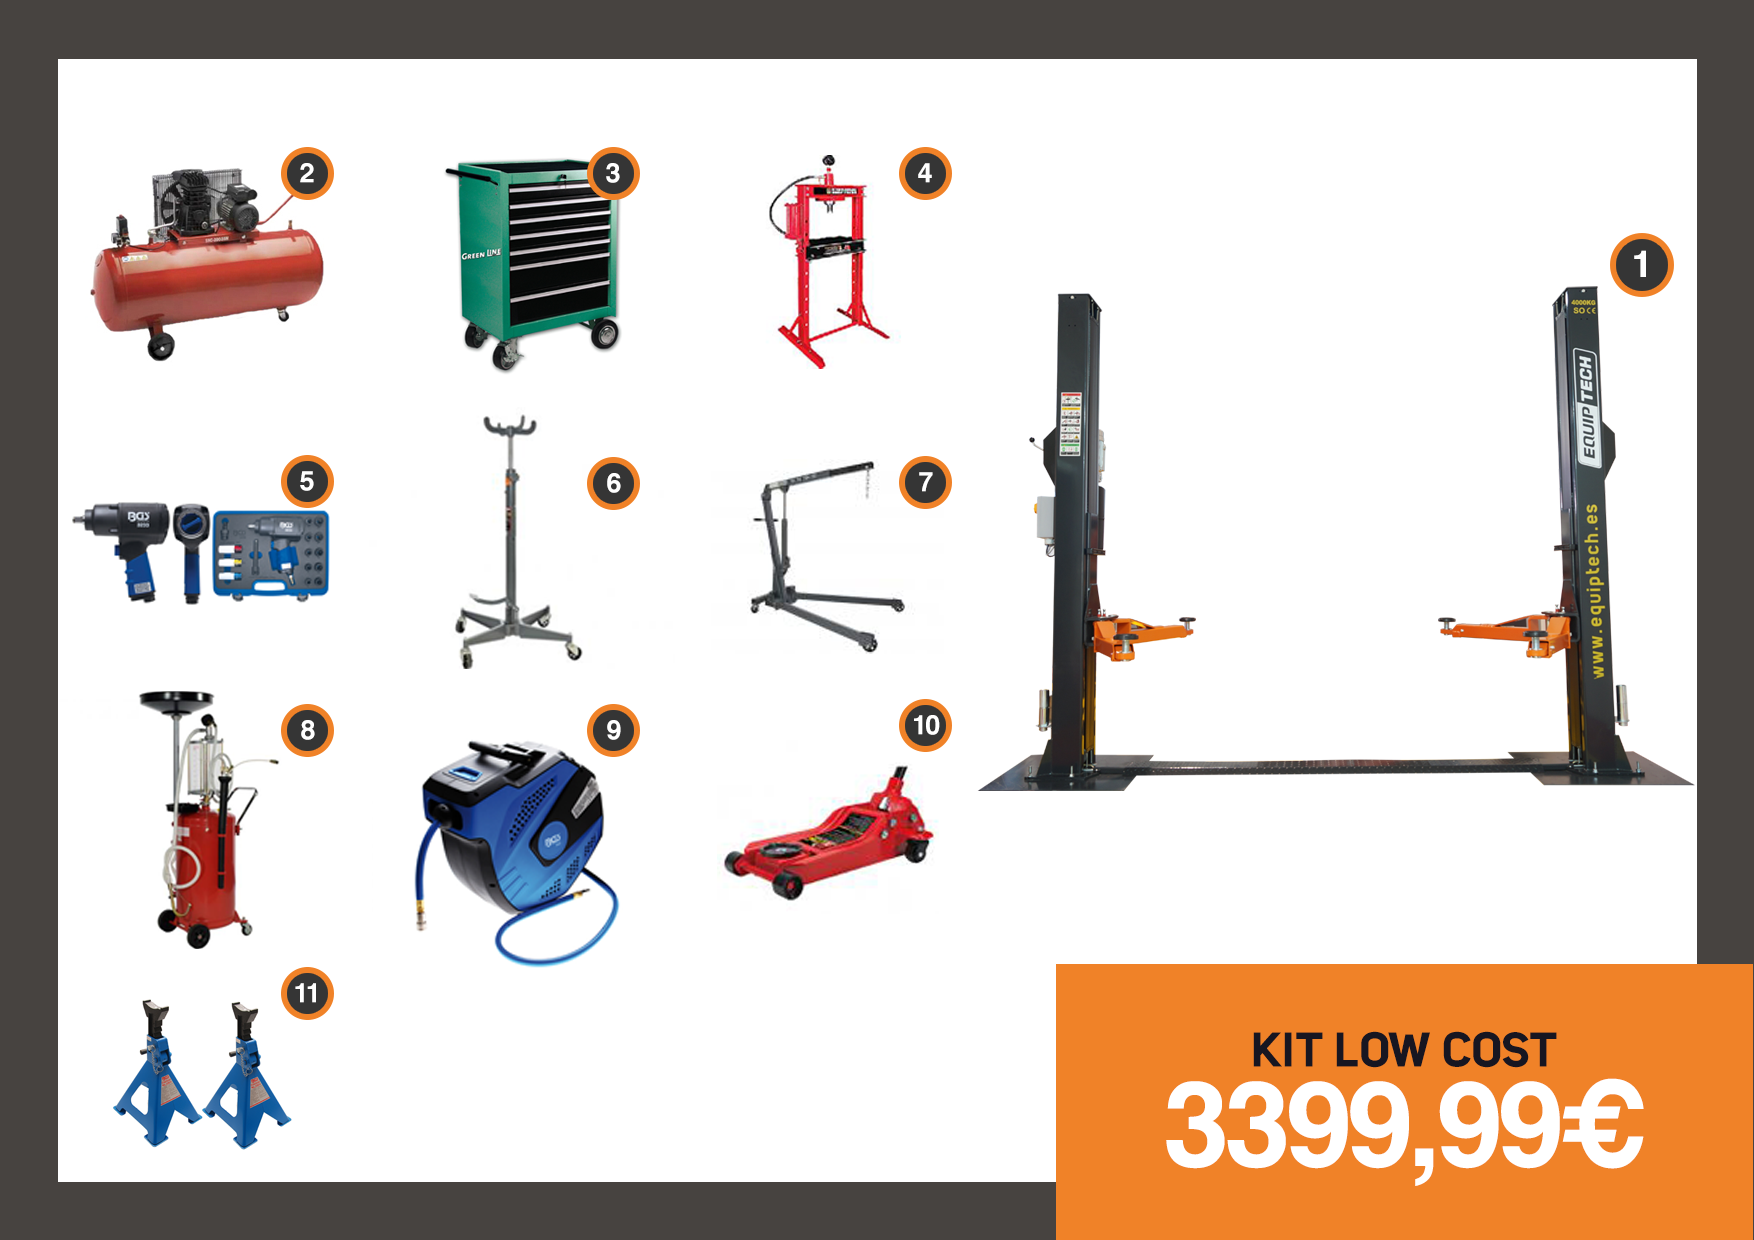 KIT LOW COST EQUIPTECH